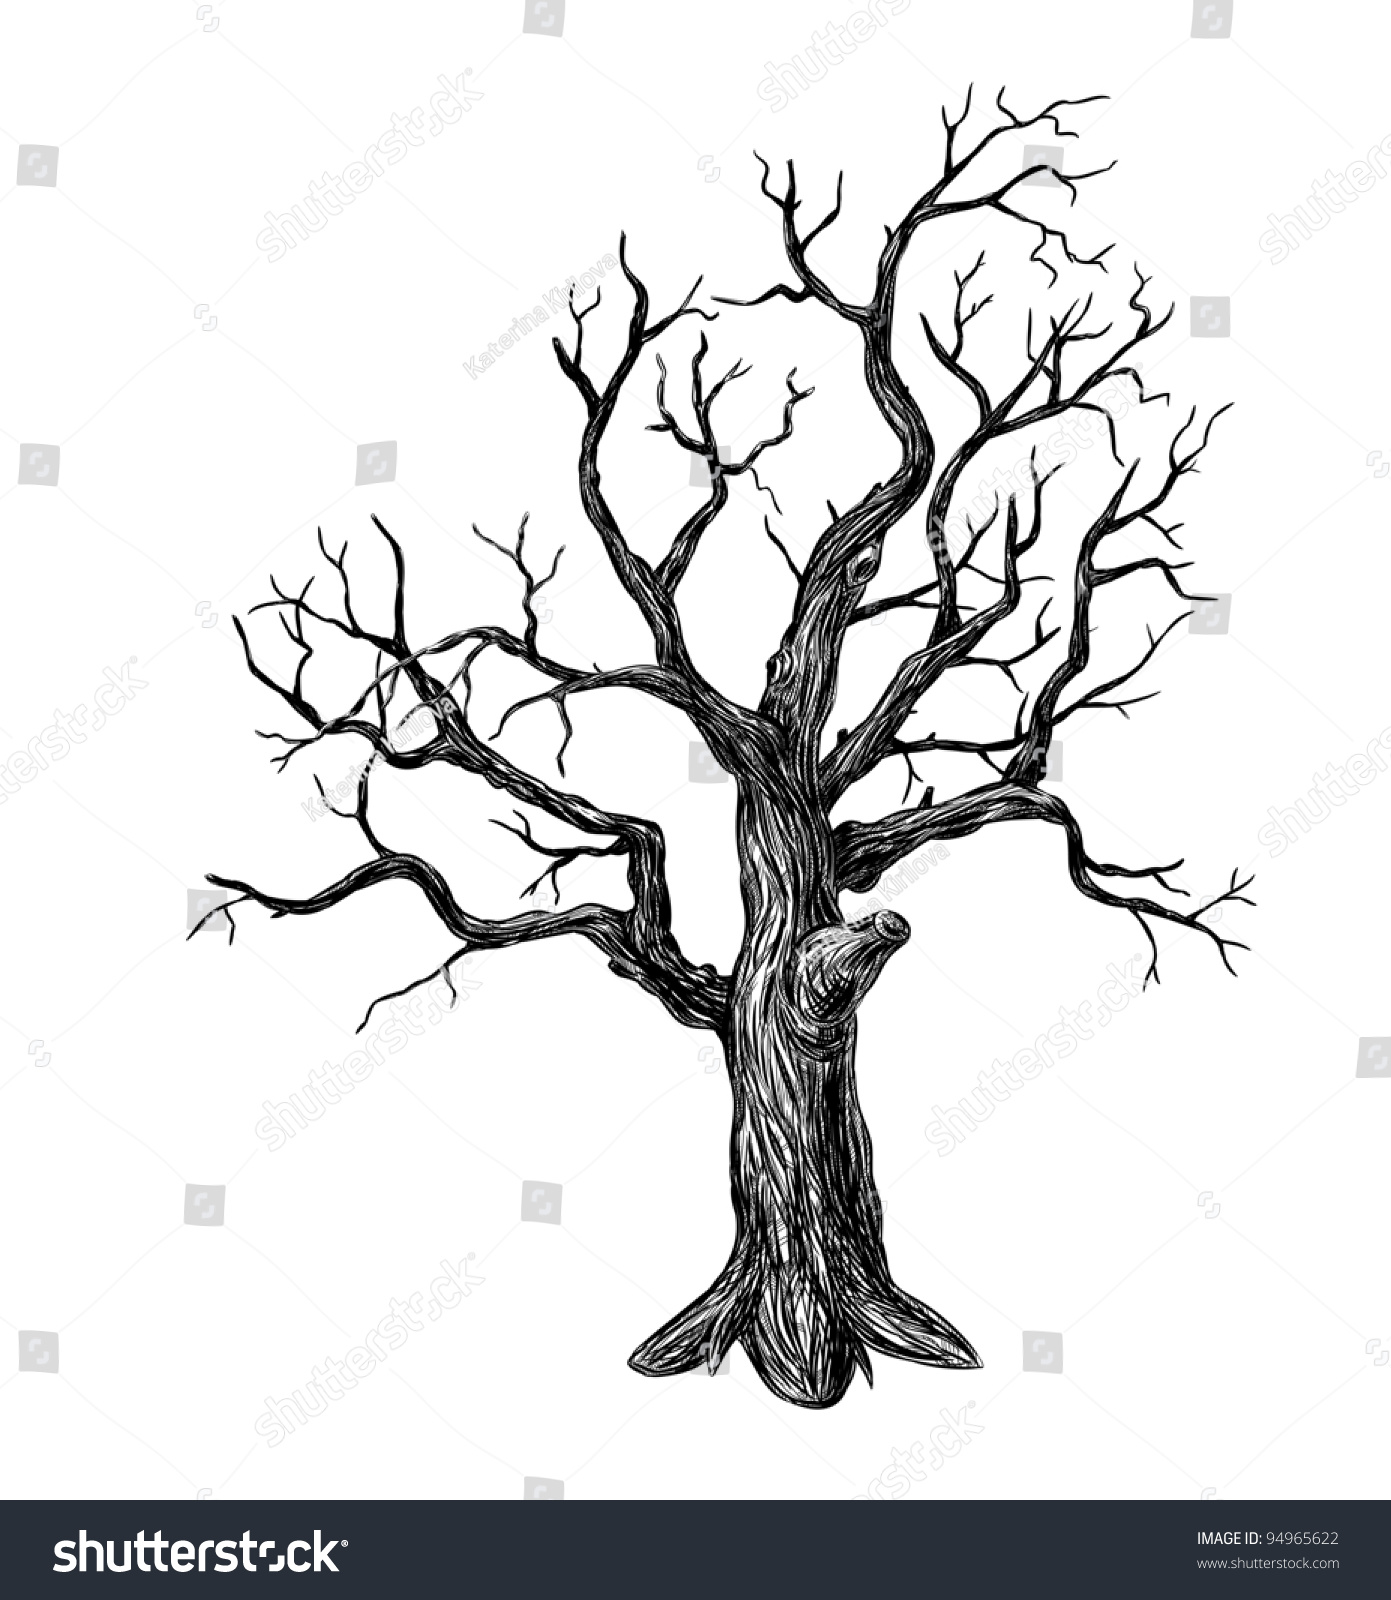 It is an image of Refreshing Leafless Tree Drawing